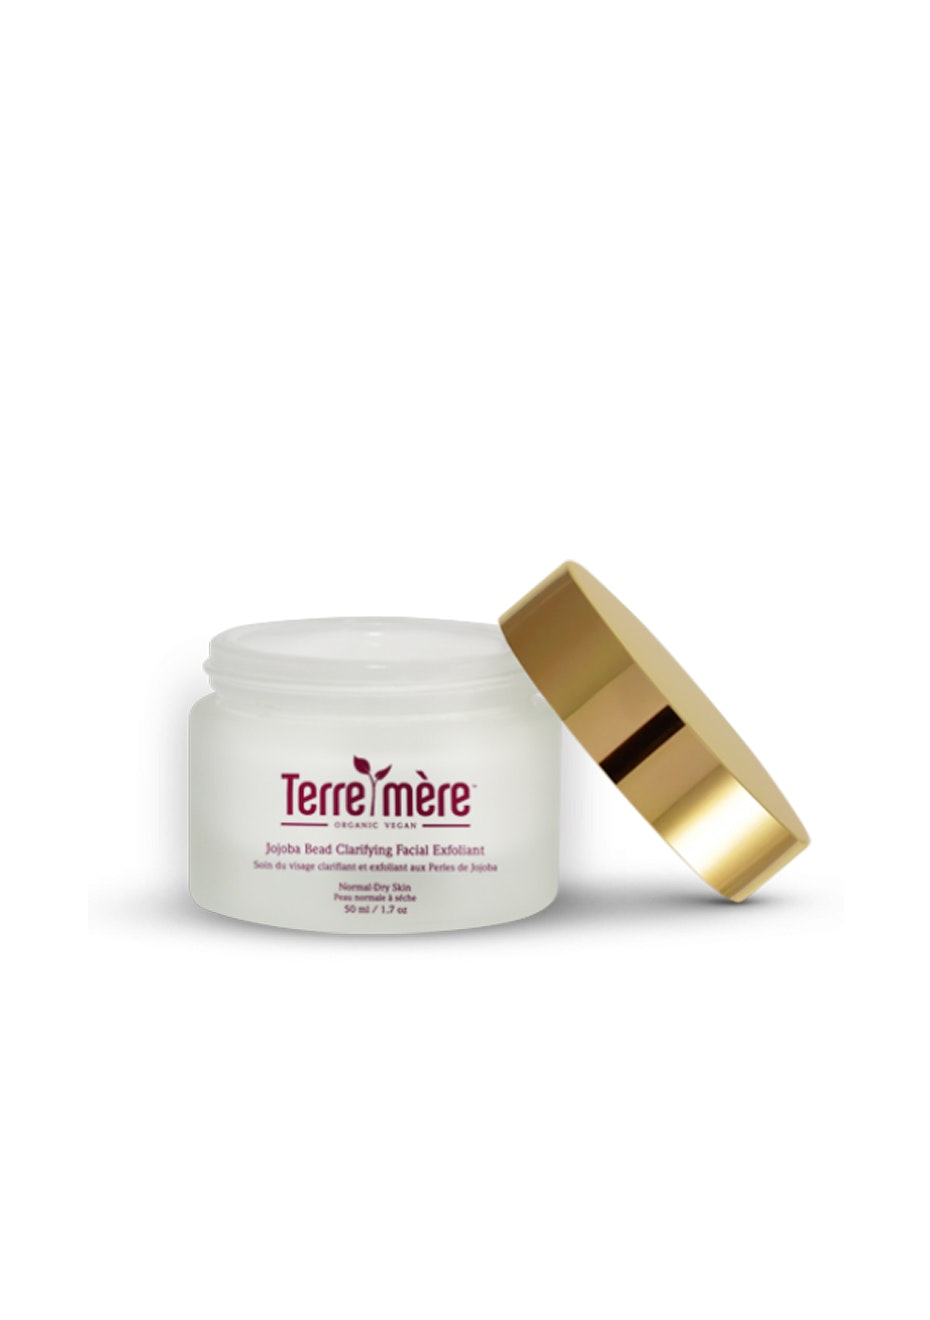 Terre Mere - Jojoba Bead Clarifying Facial Exfoliant - Normal-Dry Skin